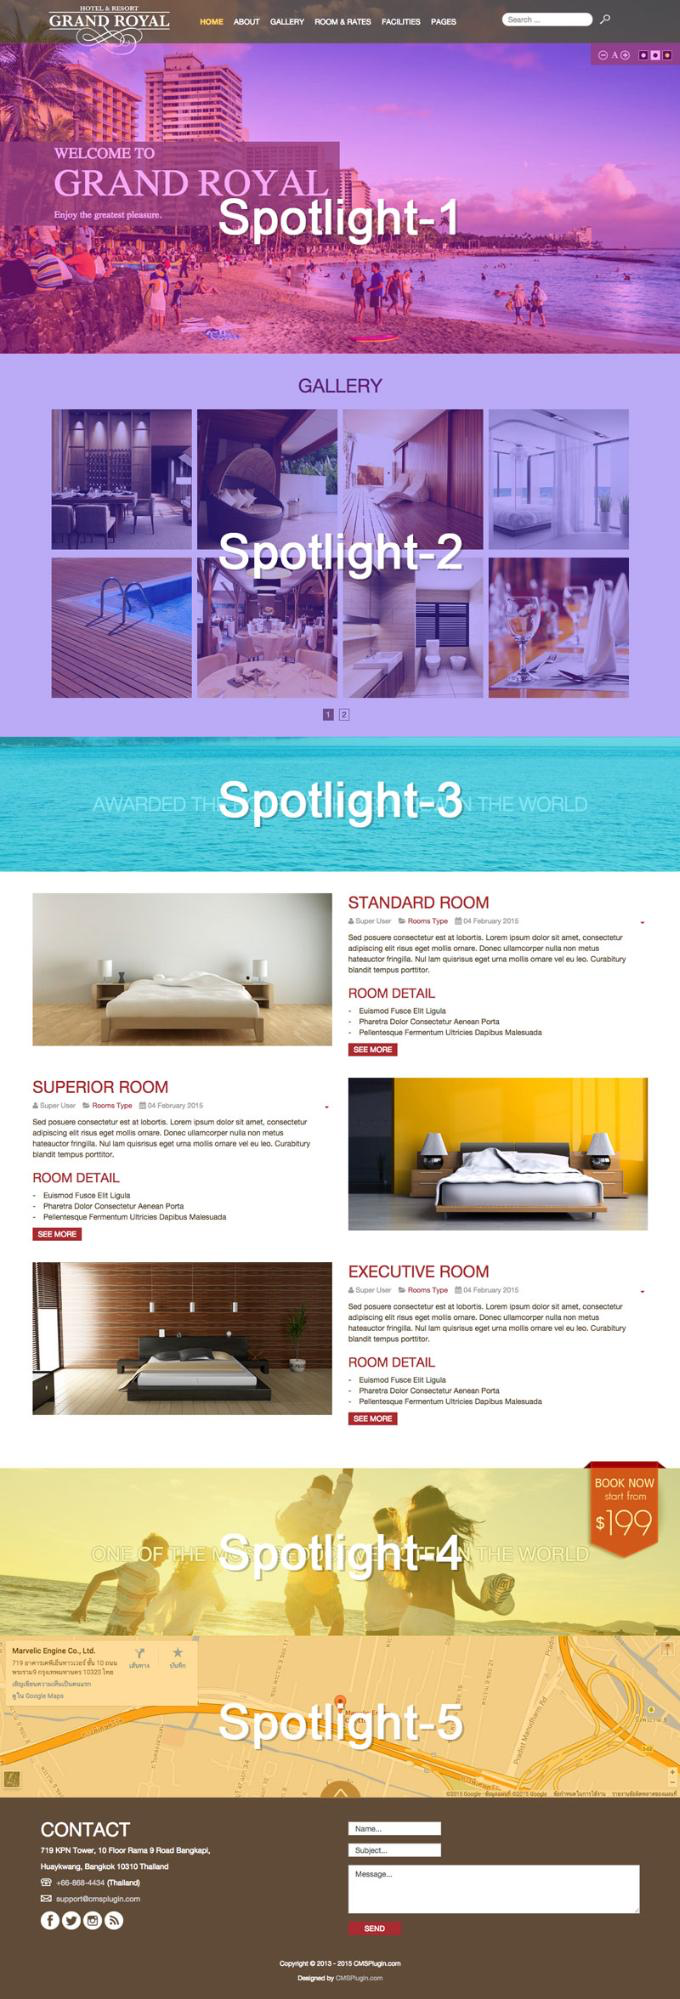 How to assign Spotlight module in the Home Layout